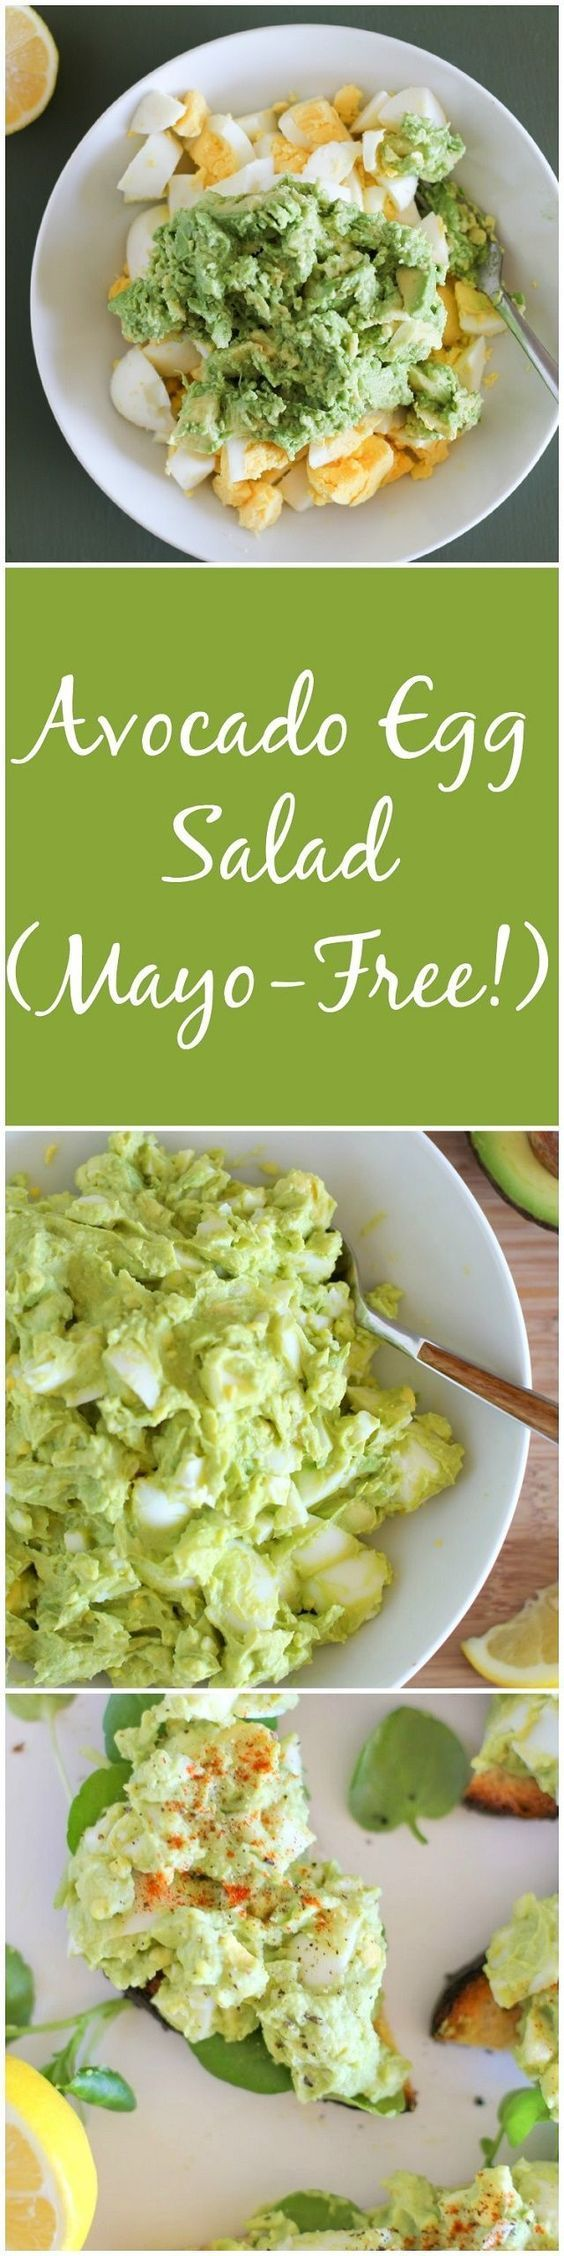 Avocado Egg Salad (Mayo Free).Adding an avocado to any salad is a tasty and healthy decision, as avocado itself creates that perfect creamy texture making the salad so delightful.nd it makes it possible to avoid adding any excess and useless fats, like mayo. Make this avocado egg salad with this great recipe and enjoy this wholesome tastiness!